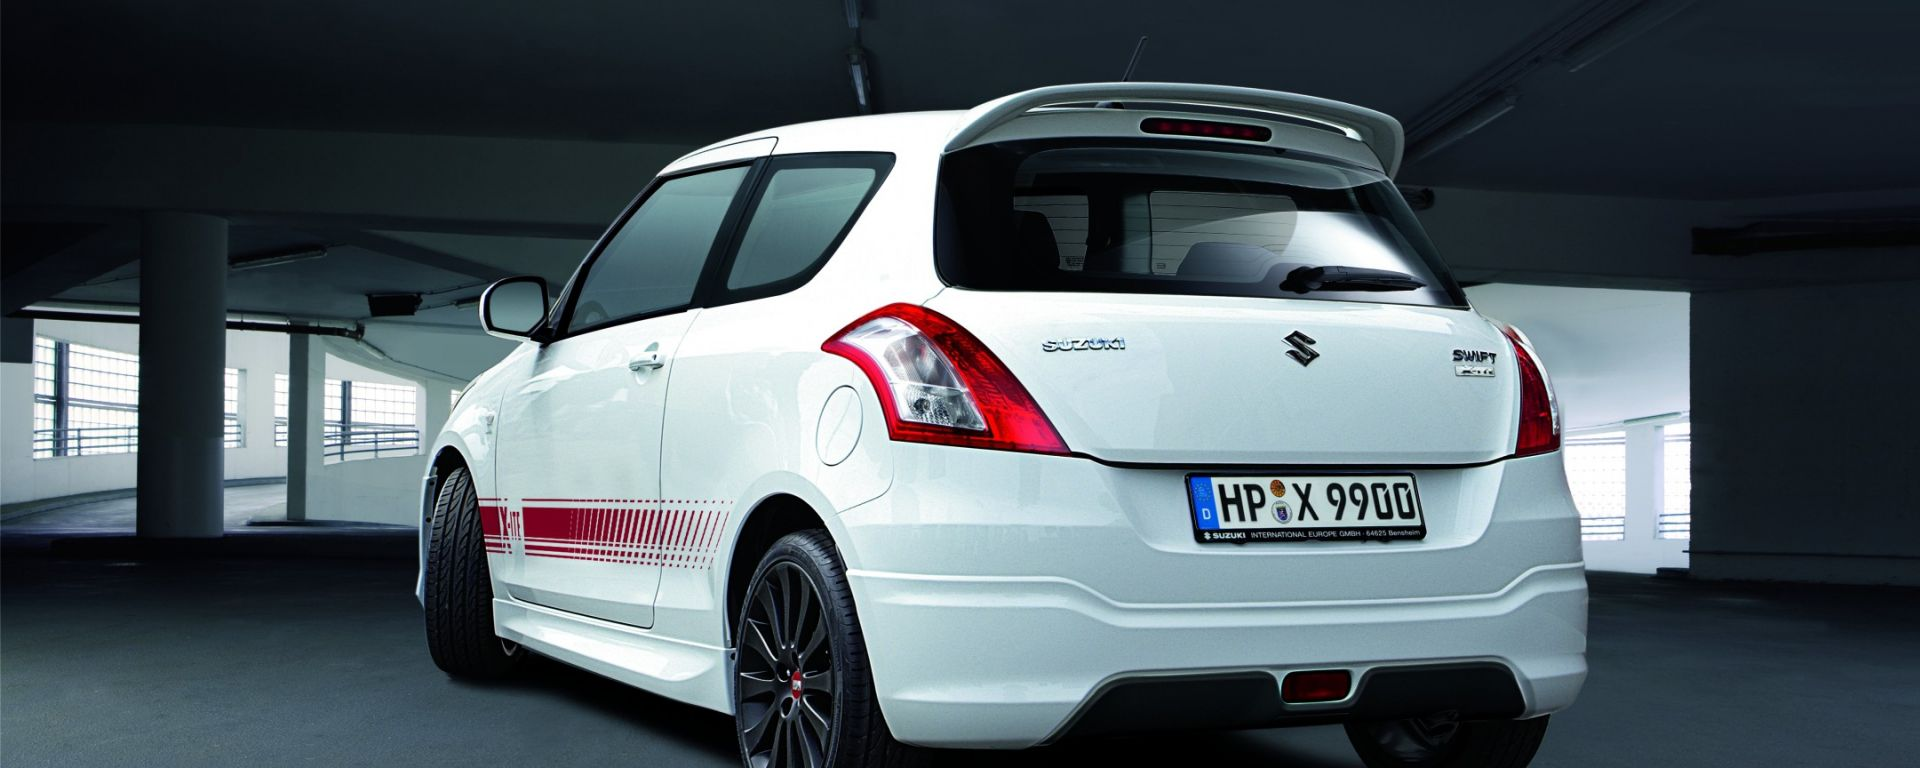 Suzuki Swift: nuova gamma accessori X-ITE